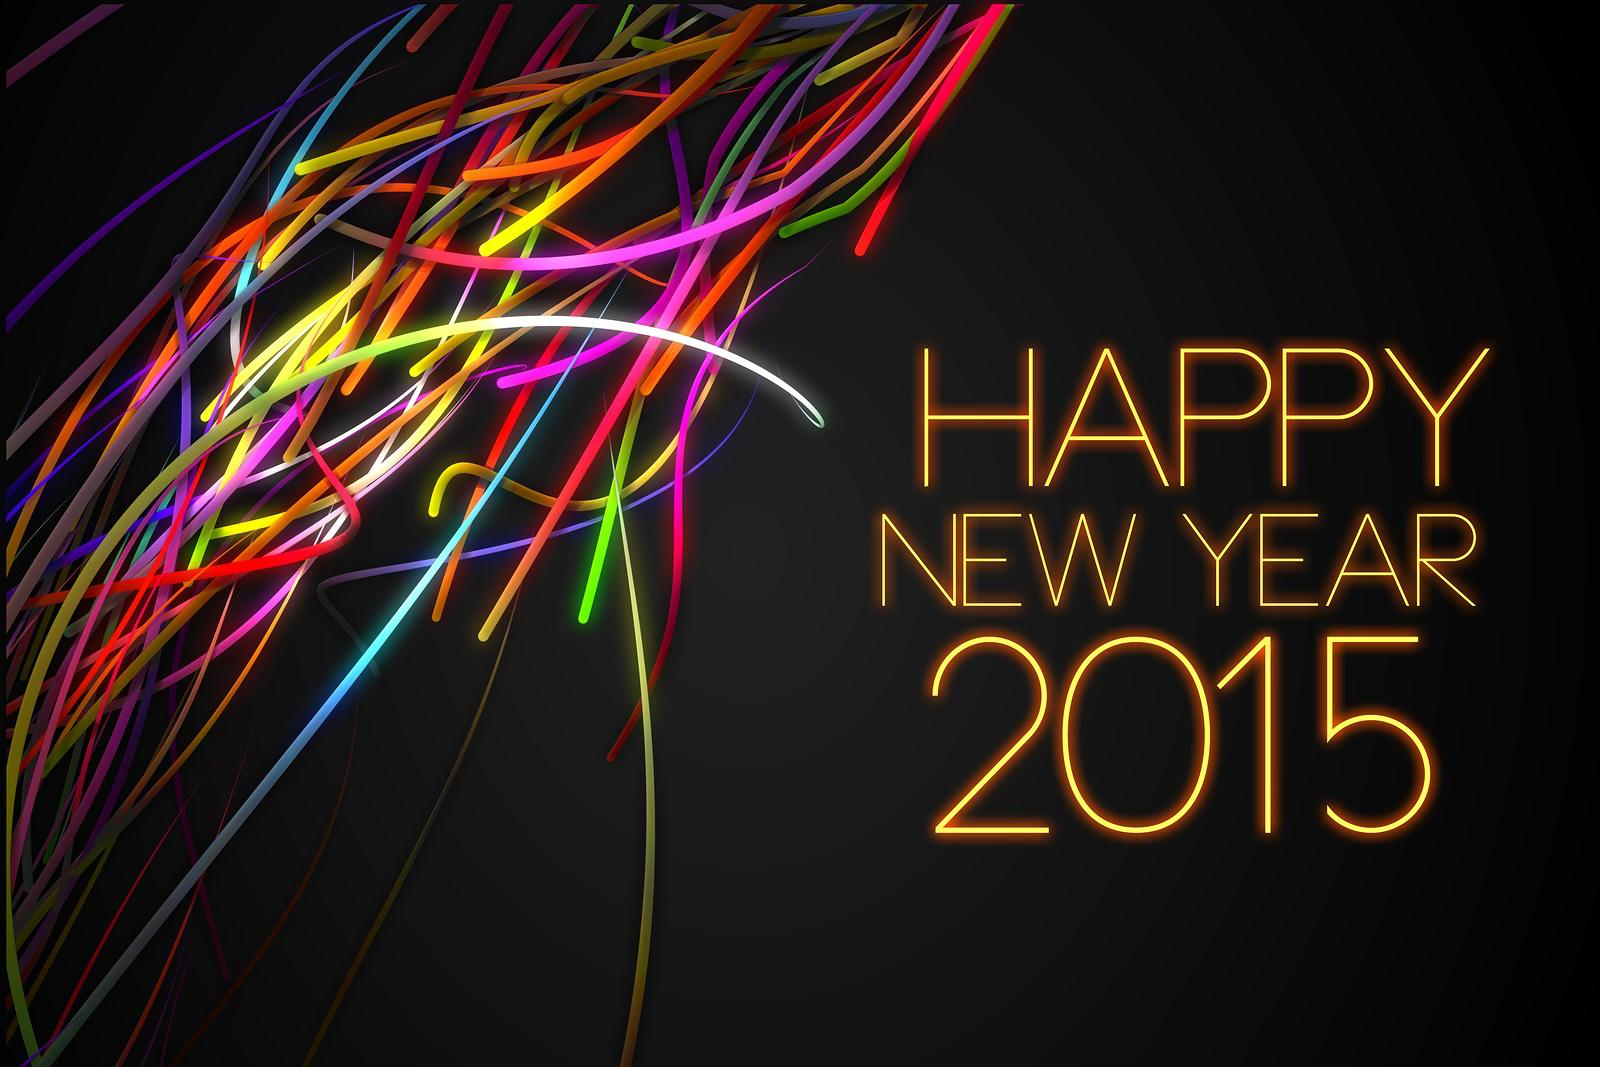 HD 3D Wallpapers HD Happy New Year 2015 Cool Abstract 1600x1067